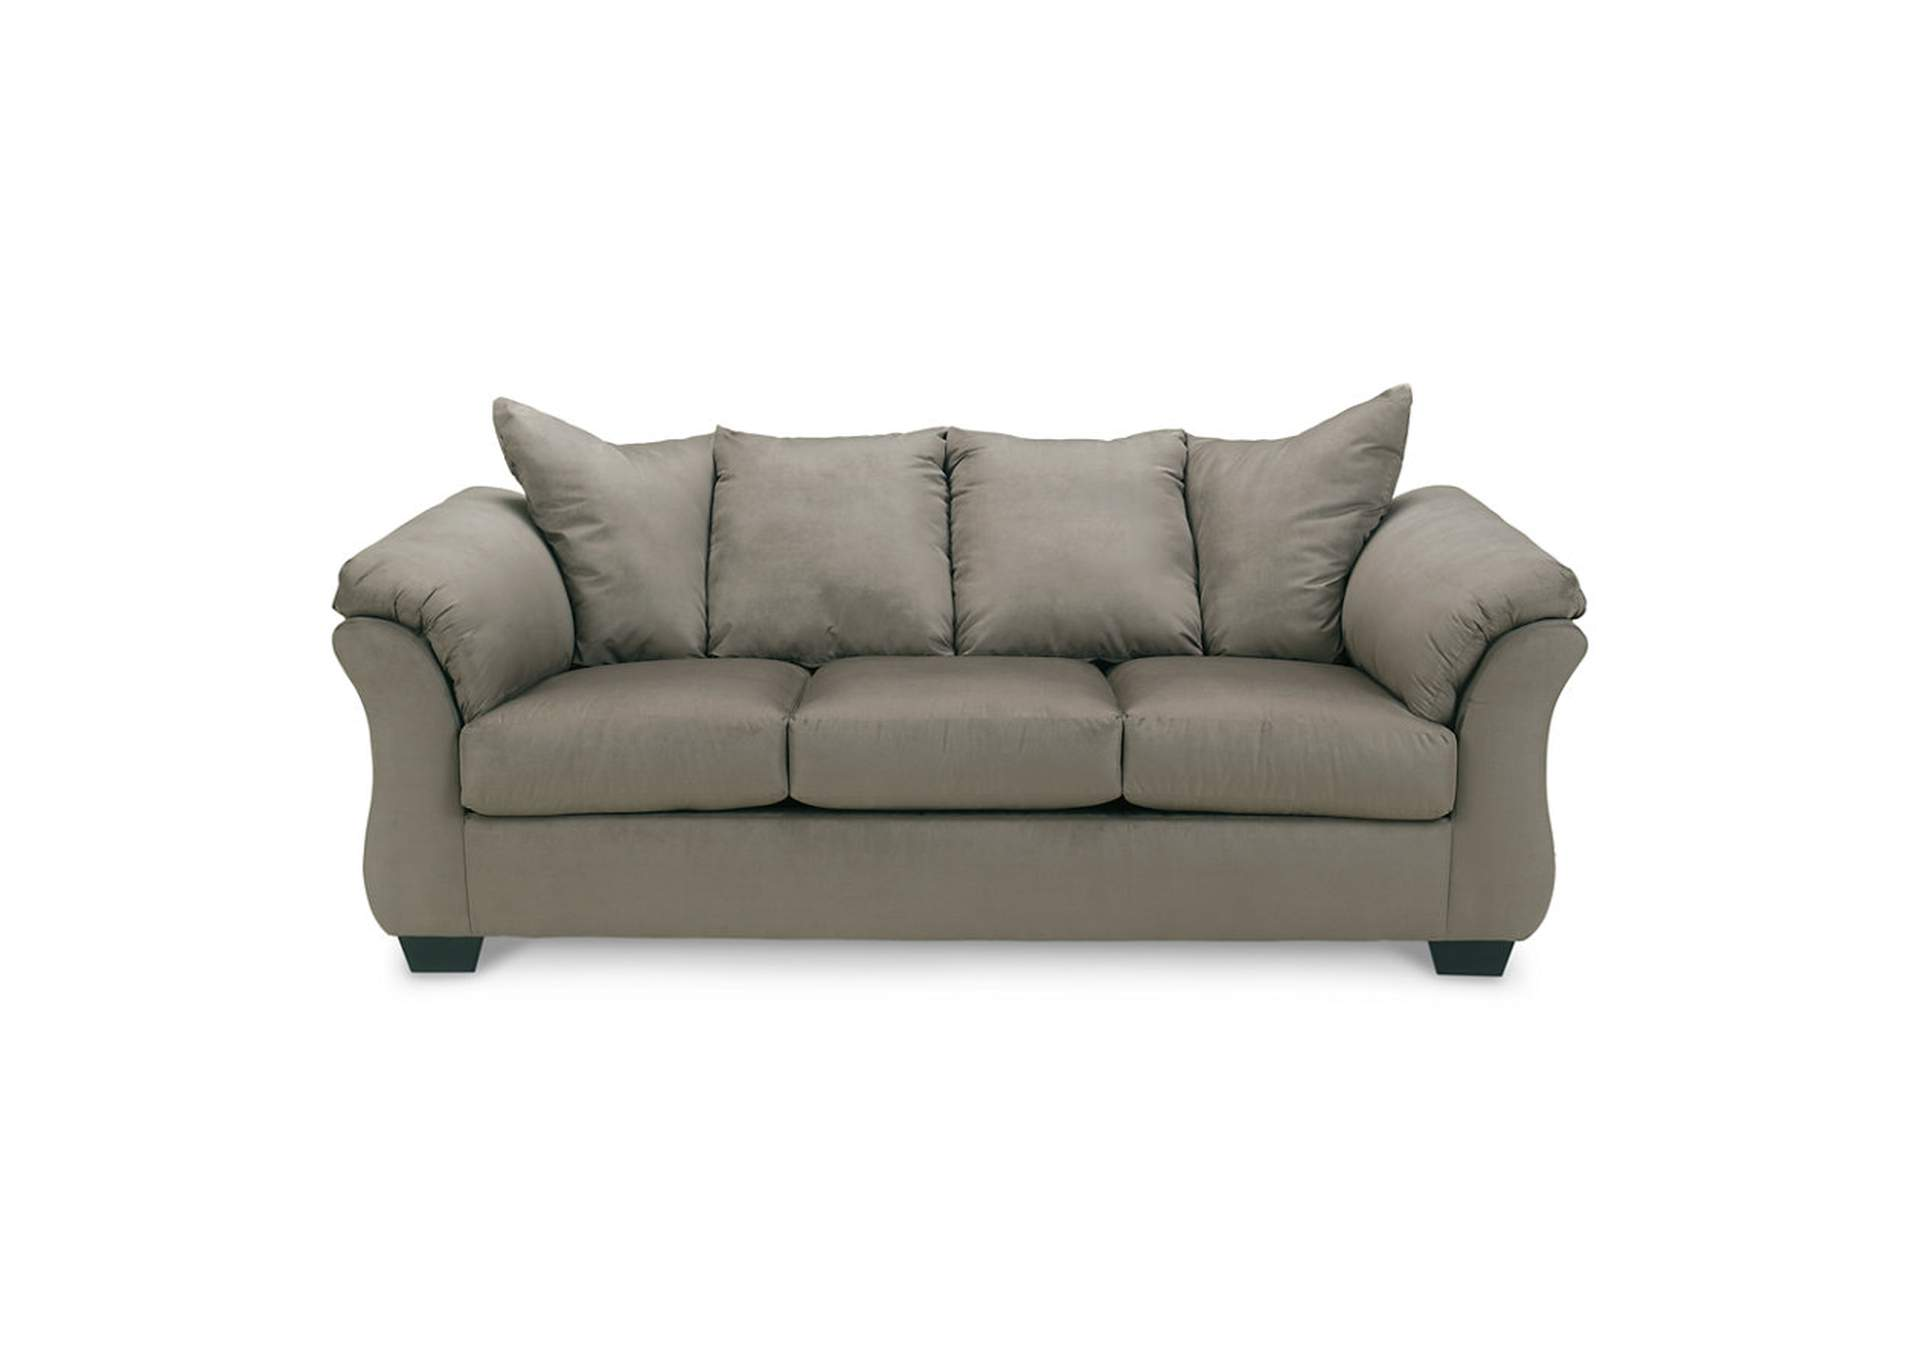 Darcy Cobblestone Sofa ,Signature Design By Ashley